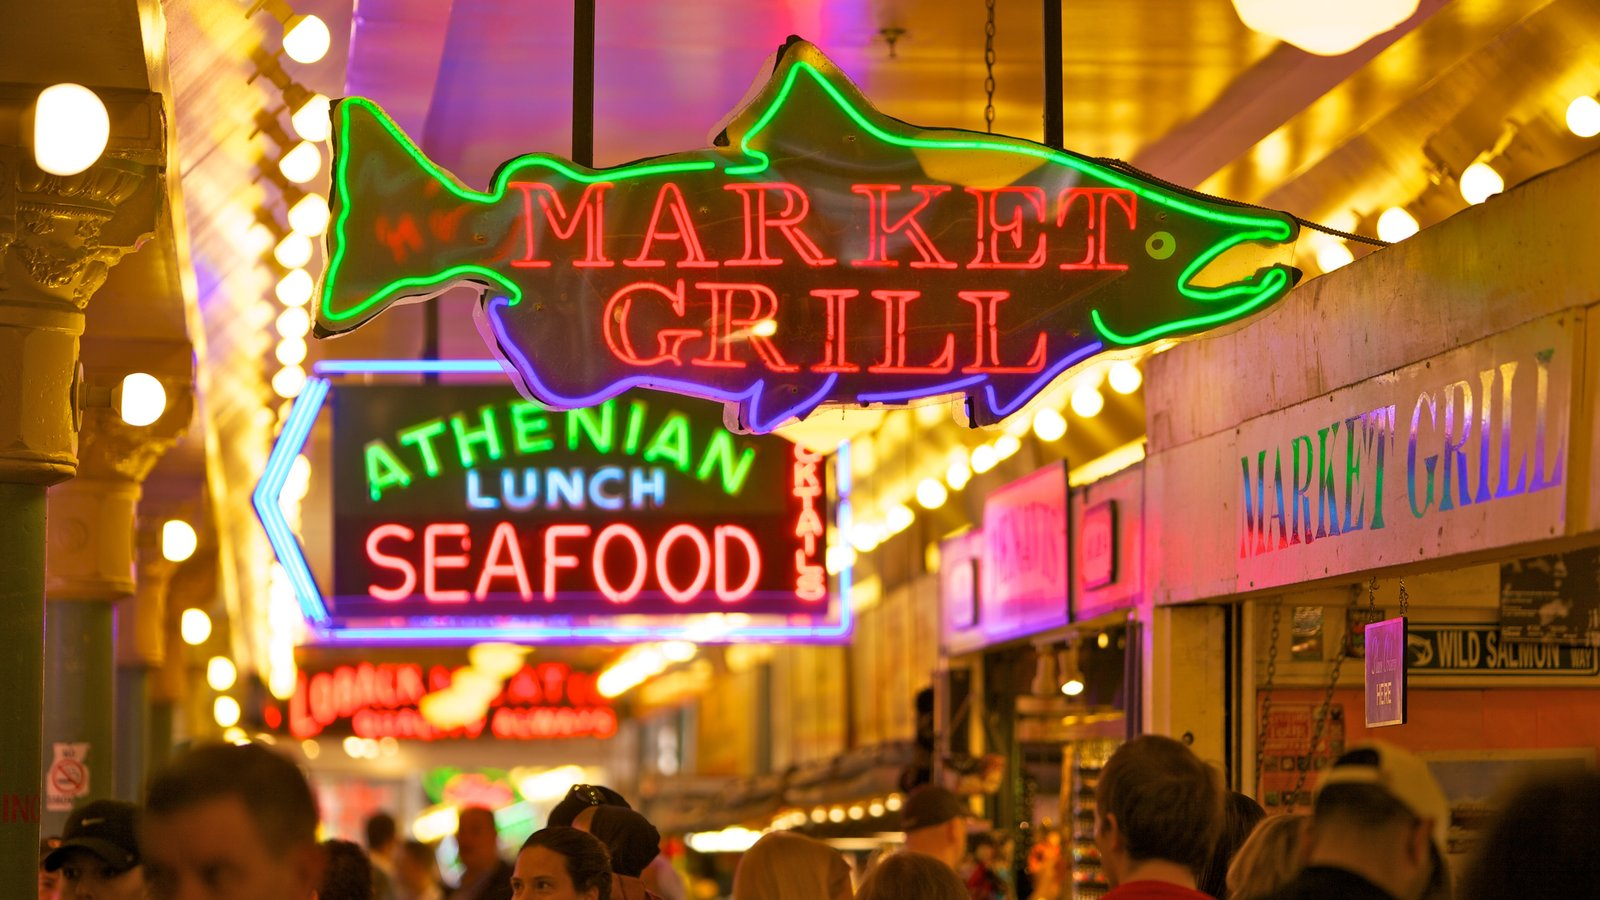 Pike Place Market which includes markets, signage and night scenes